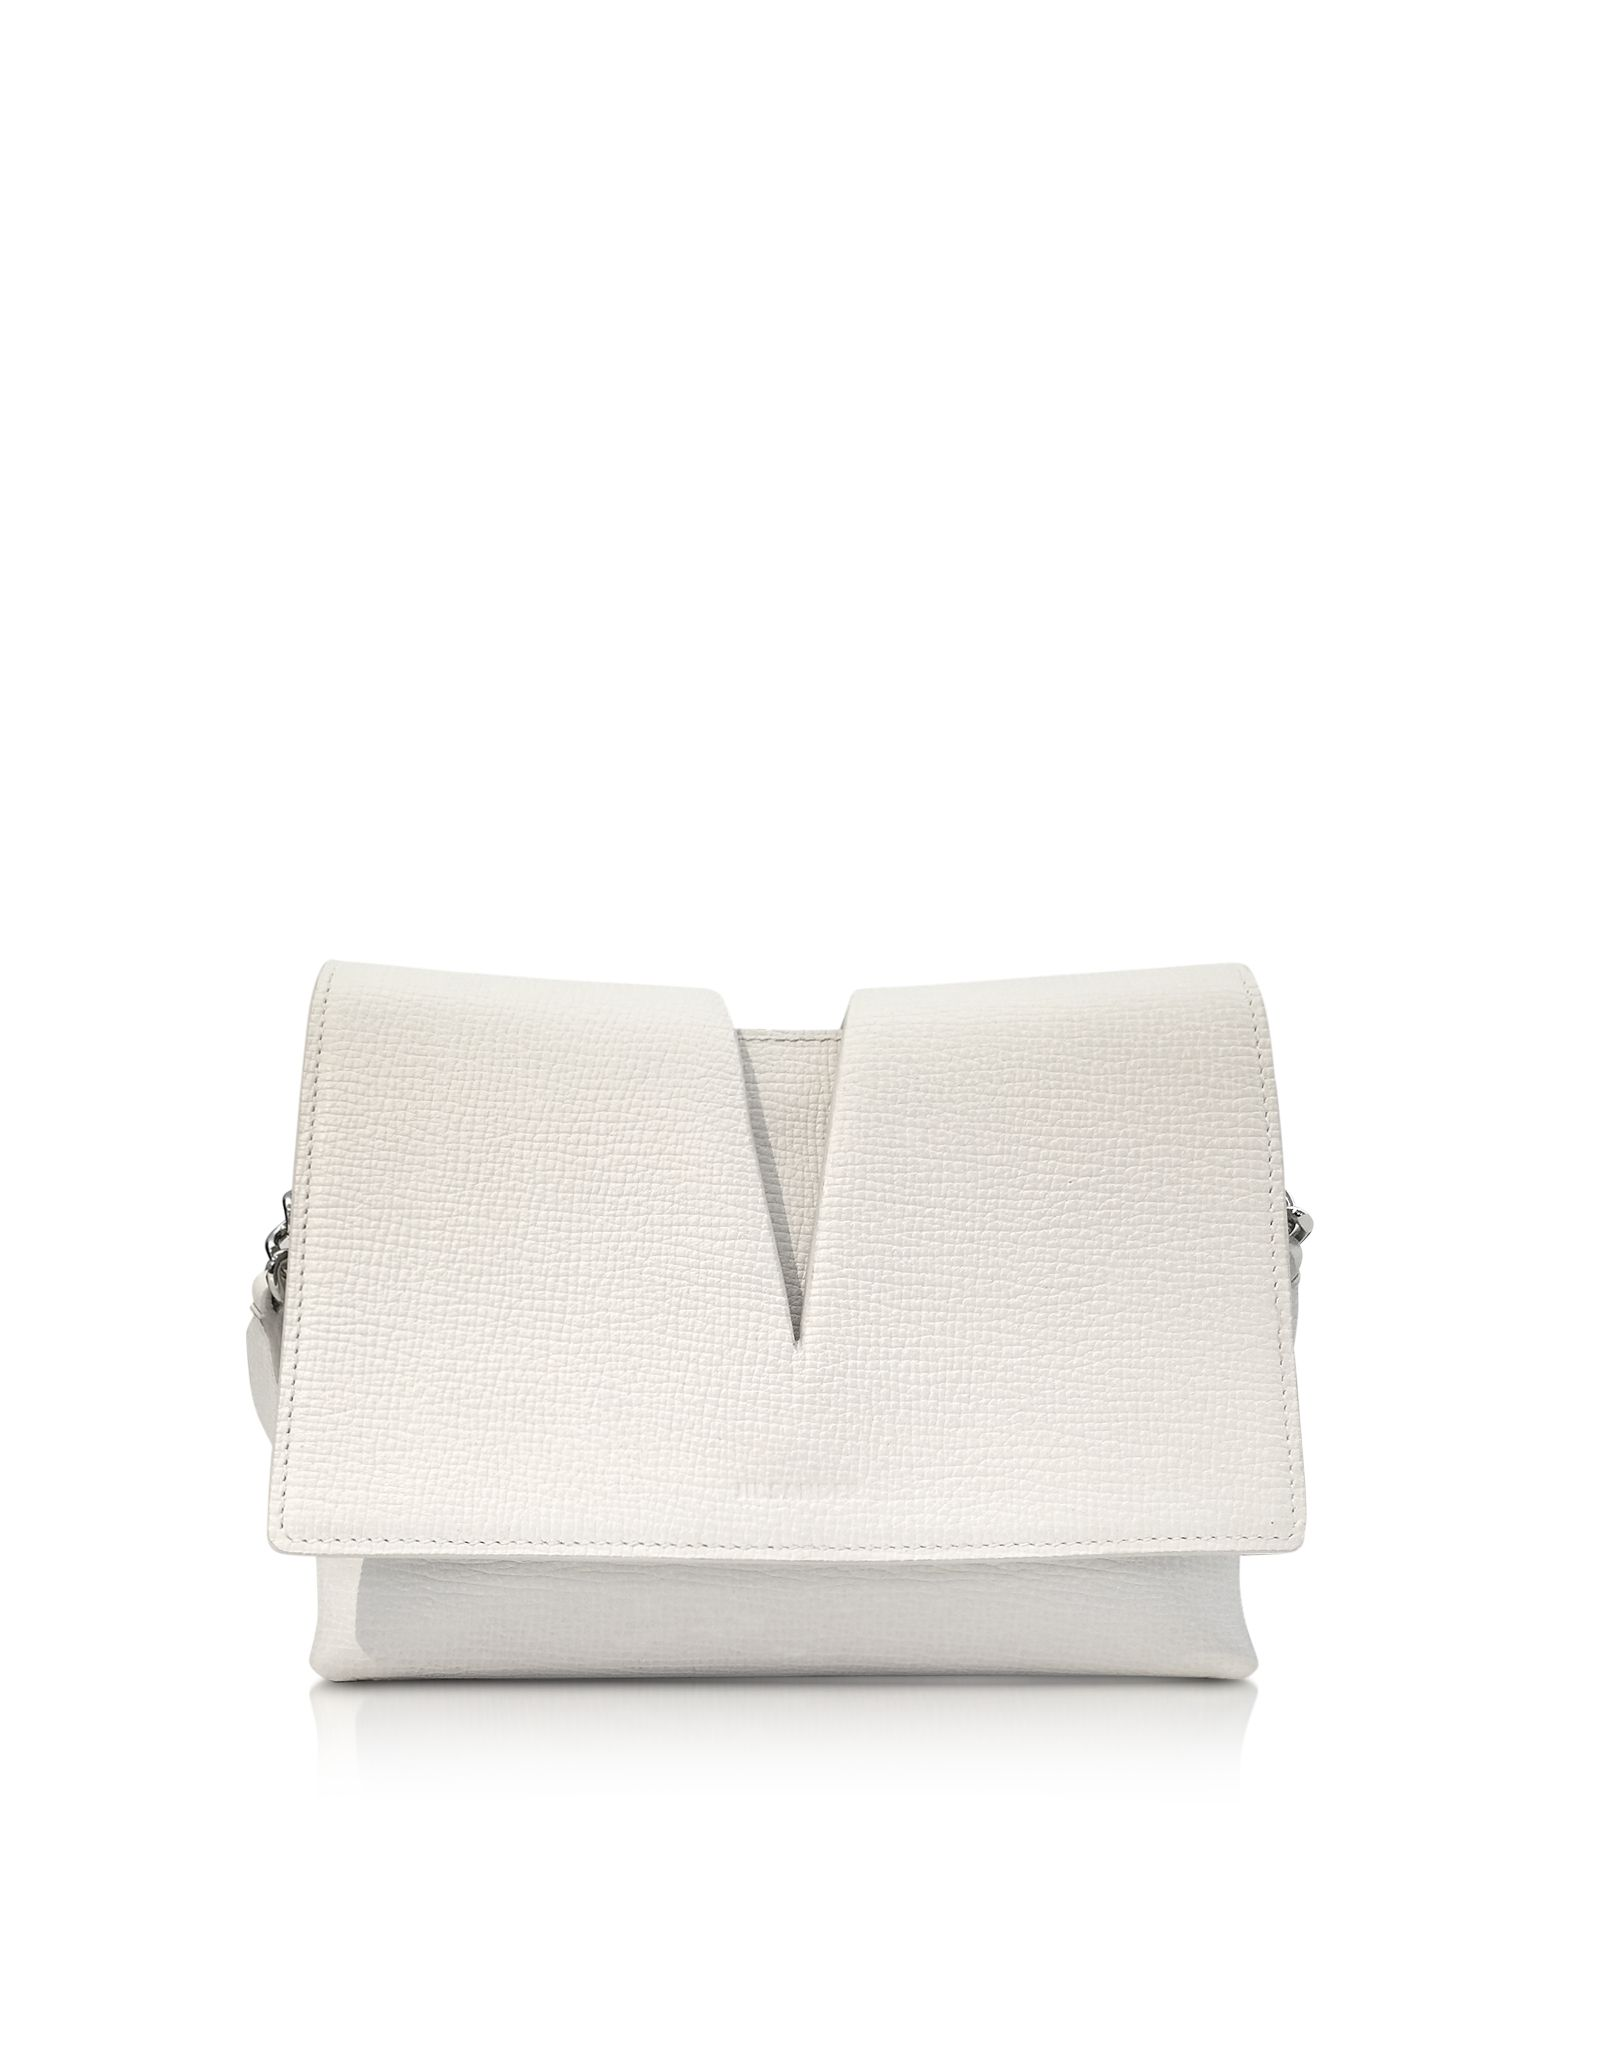 e31a1b2cb6 Jil Sander View Small White Leather Shoulder Bag at FORZIERI